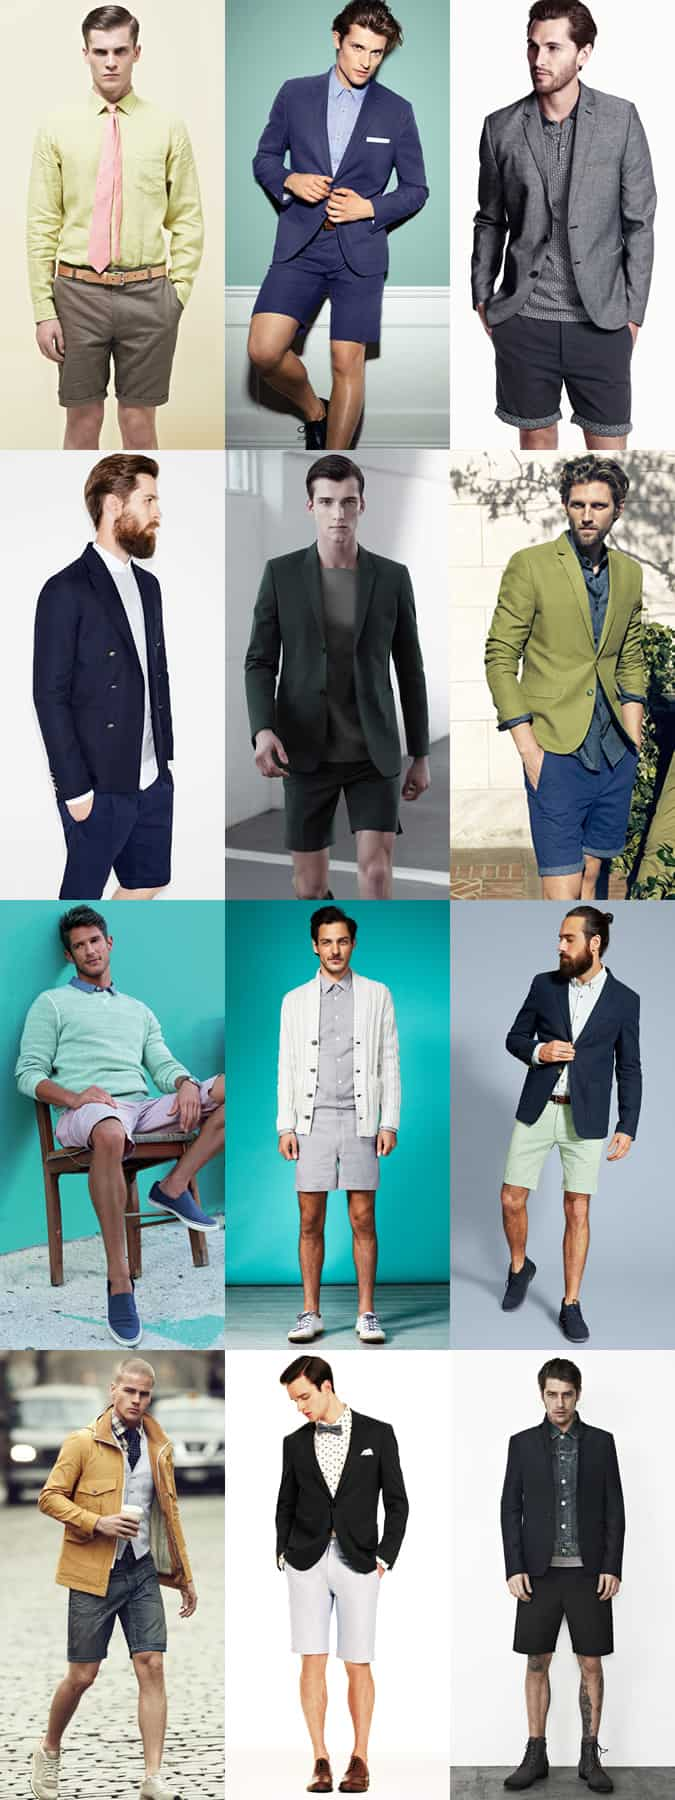 Smart-Casual Outfit Inspiration: Shorts